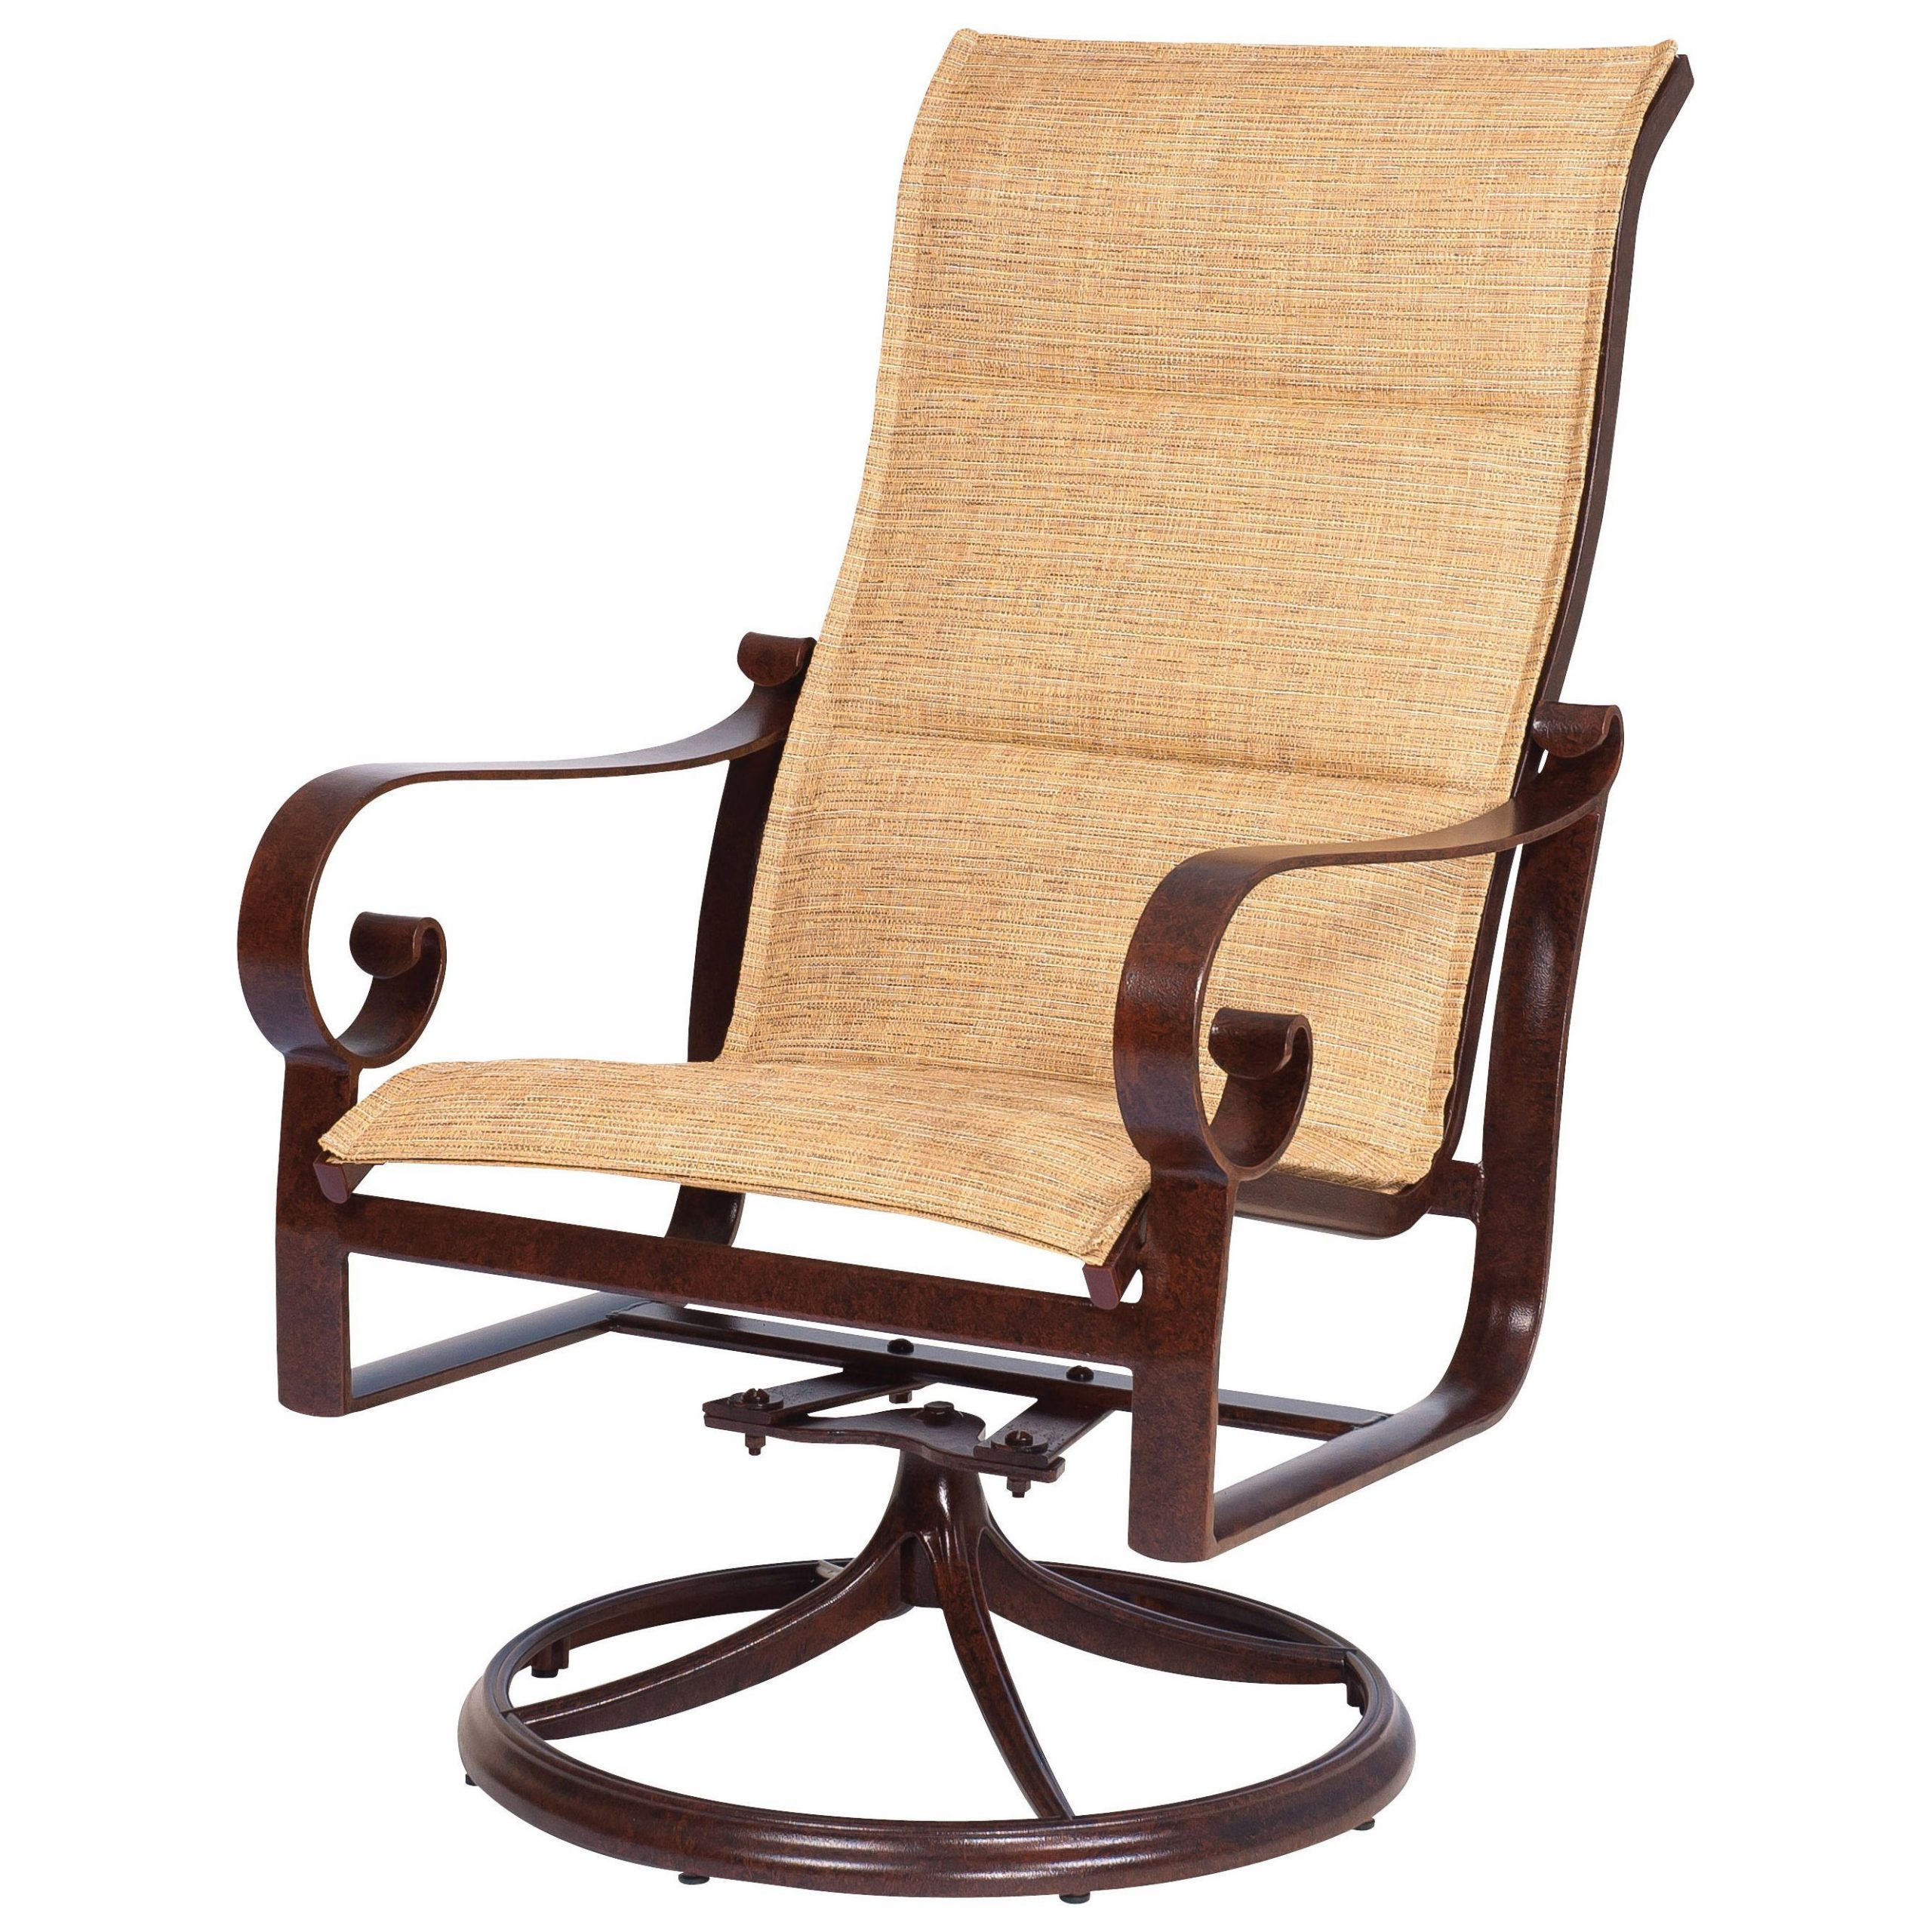 Woodard Belden Padded Sling Aluminum High Back Swivel Rocker Within Famous Sling High Back Swivel Chairs (Gallery 1 of 30)